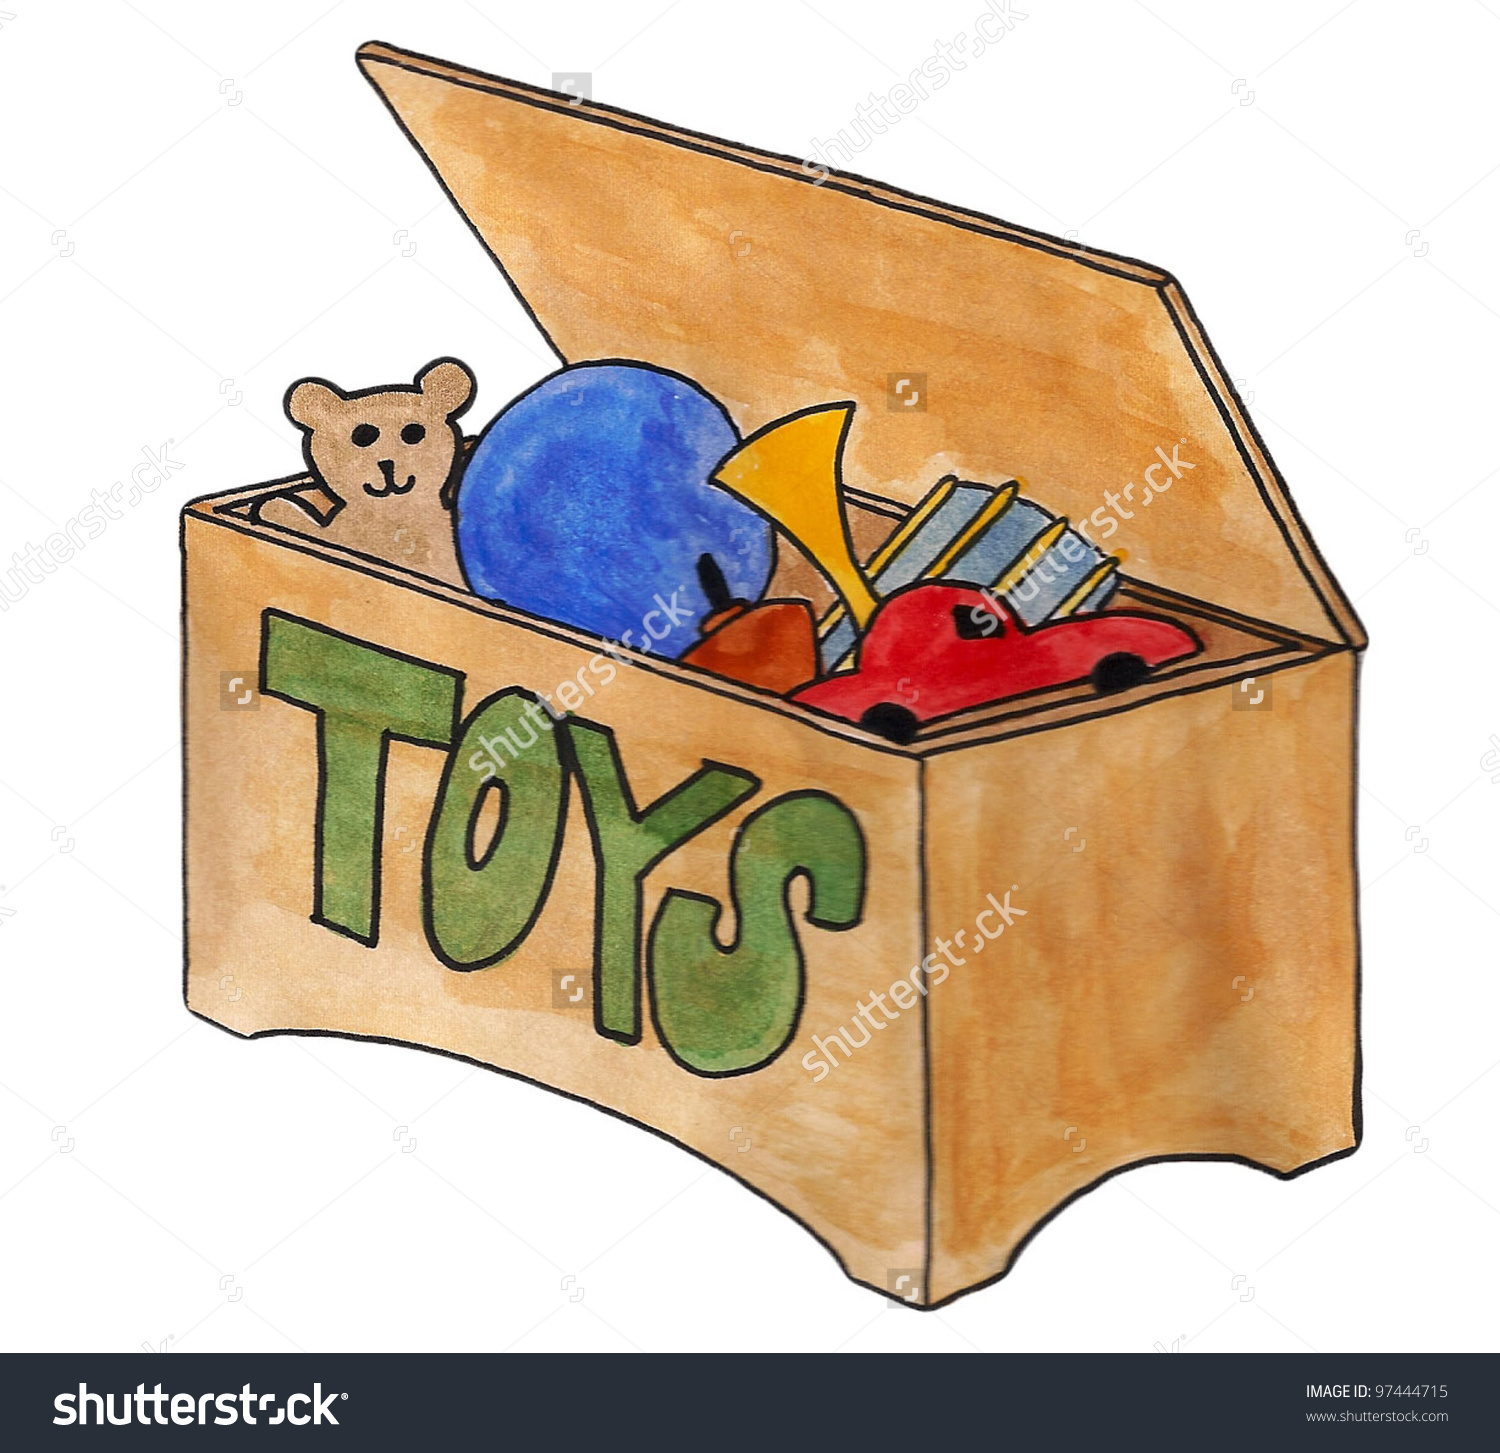 Toy in a box clipart vector royalty free 94+ Toy Box Clipart | ClipartLook vector royalty free